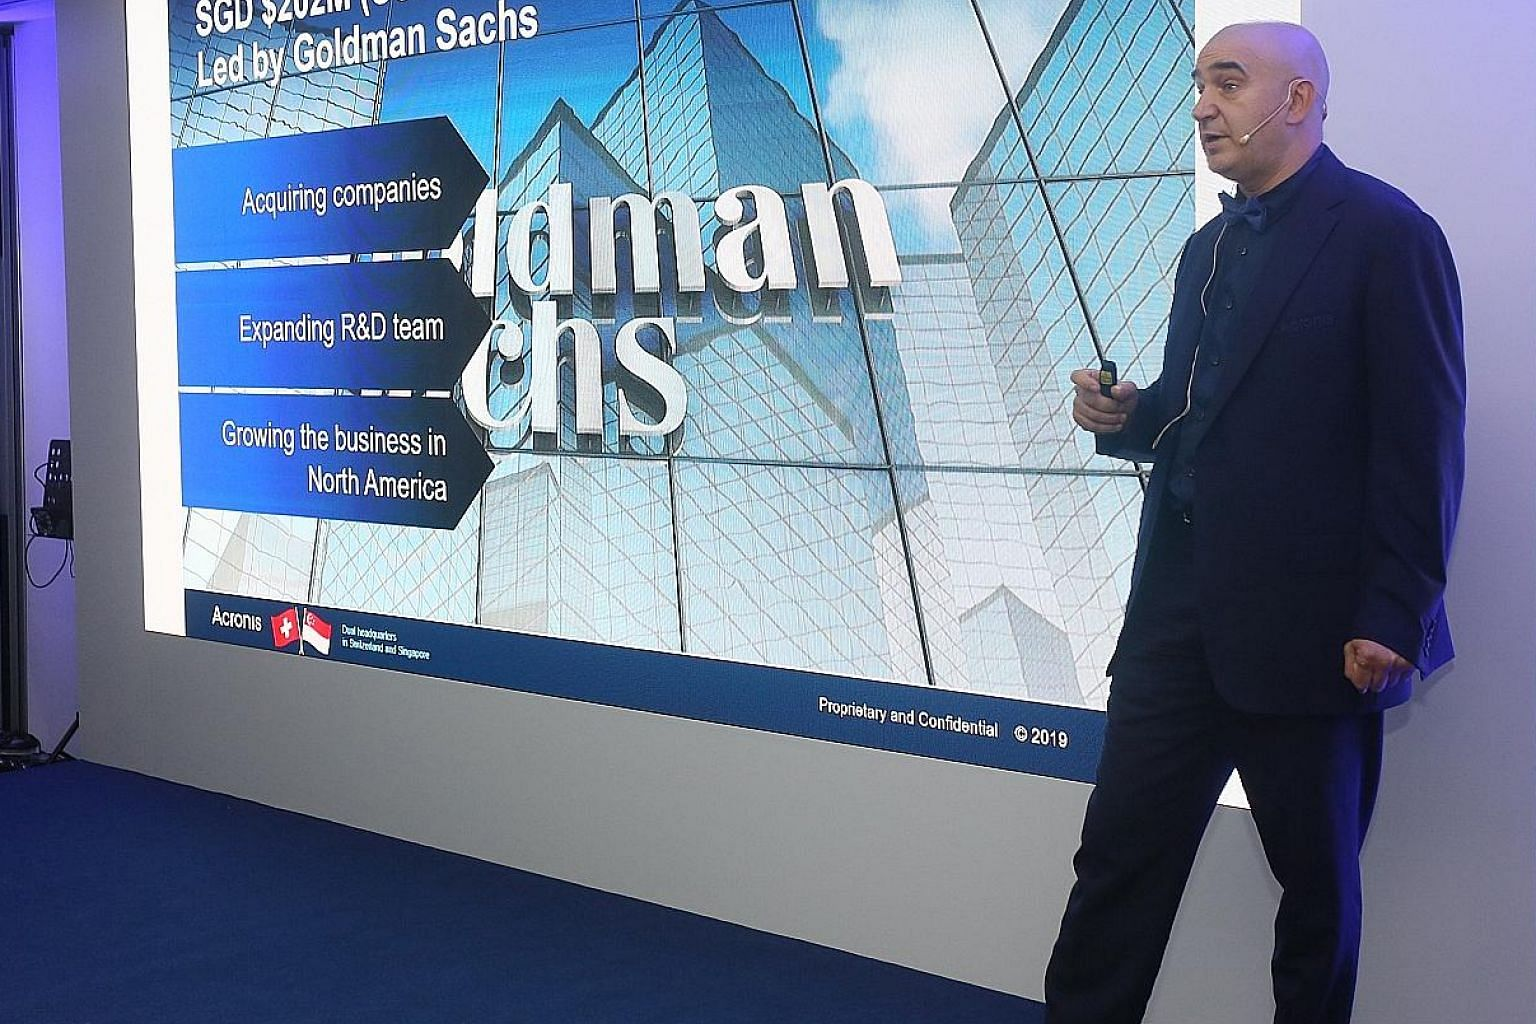 Acronis chief executive Serguei Beloussov says that as the firm has a base in Singapore, it is in a good position to seize the global cyber-security market. Finding talent, however, is a challenge worldwide, he says.